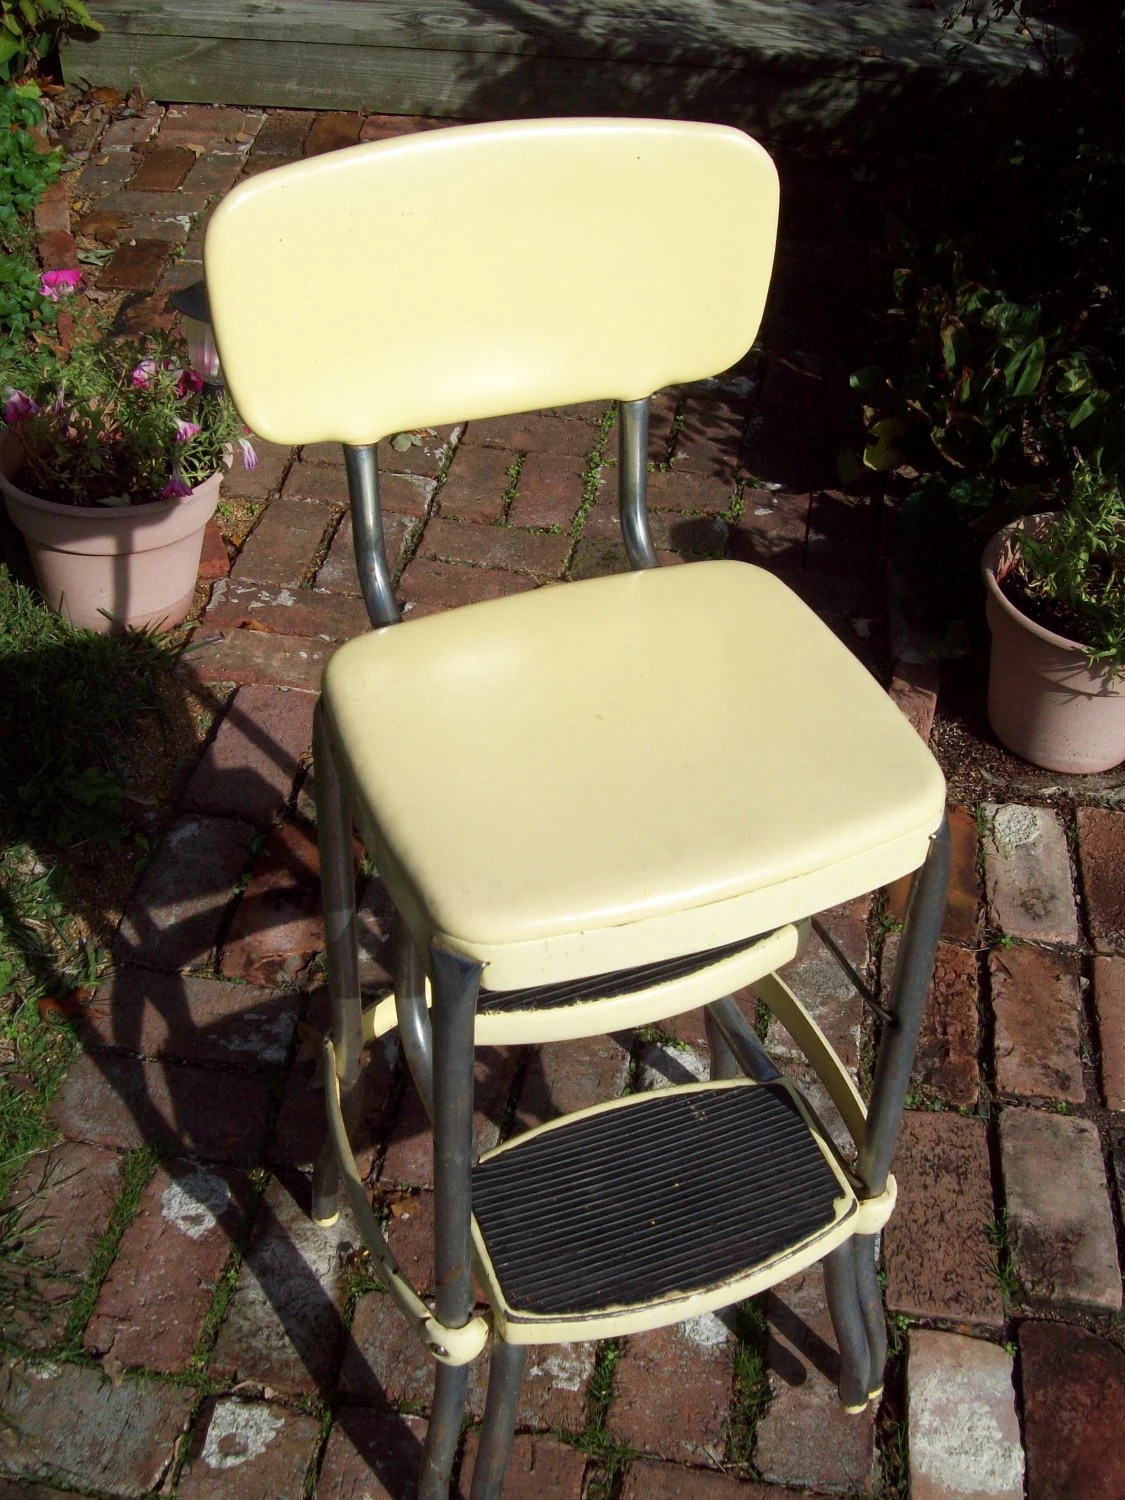 vintage cosco step stool chair covers to buy cape town by thevrose on etsy